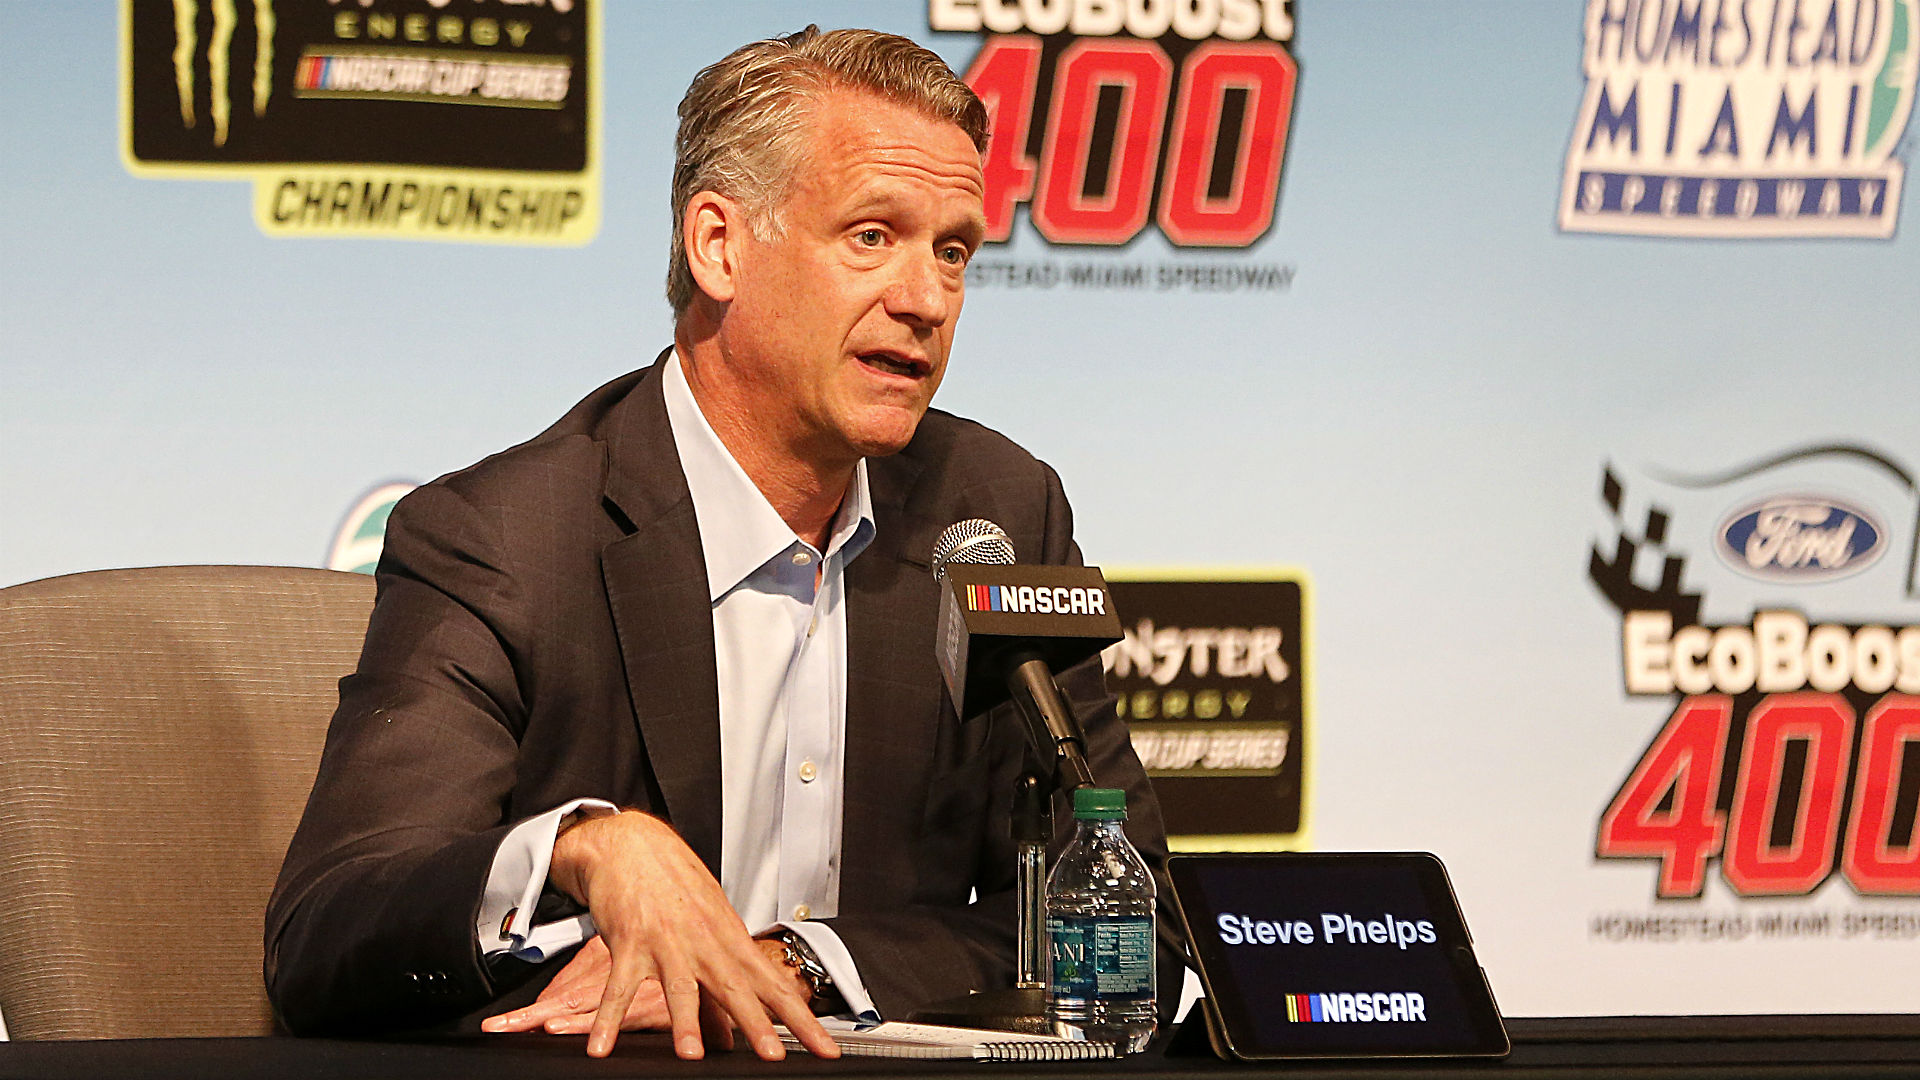 NASCAR president Steve Phelps points to healthy trends within sport